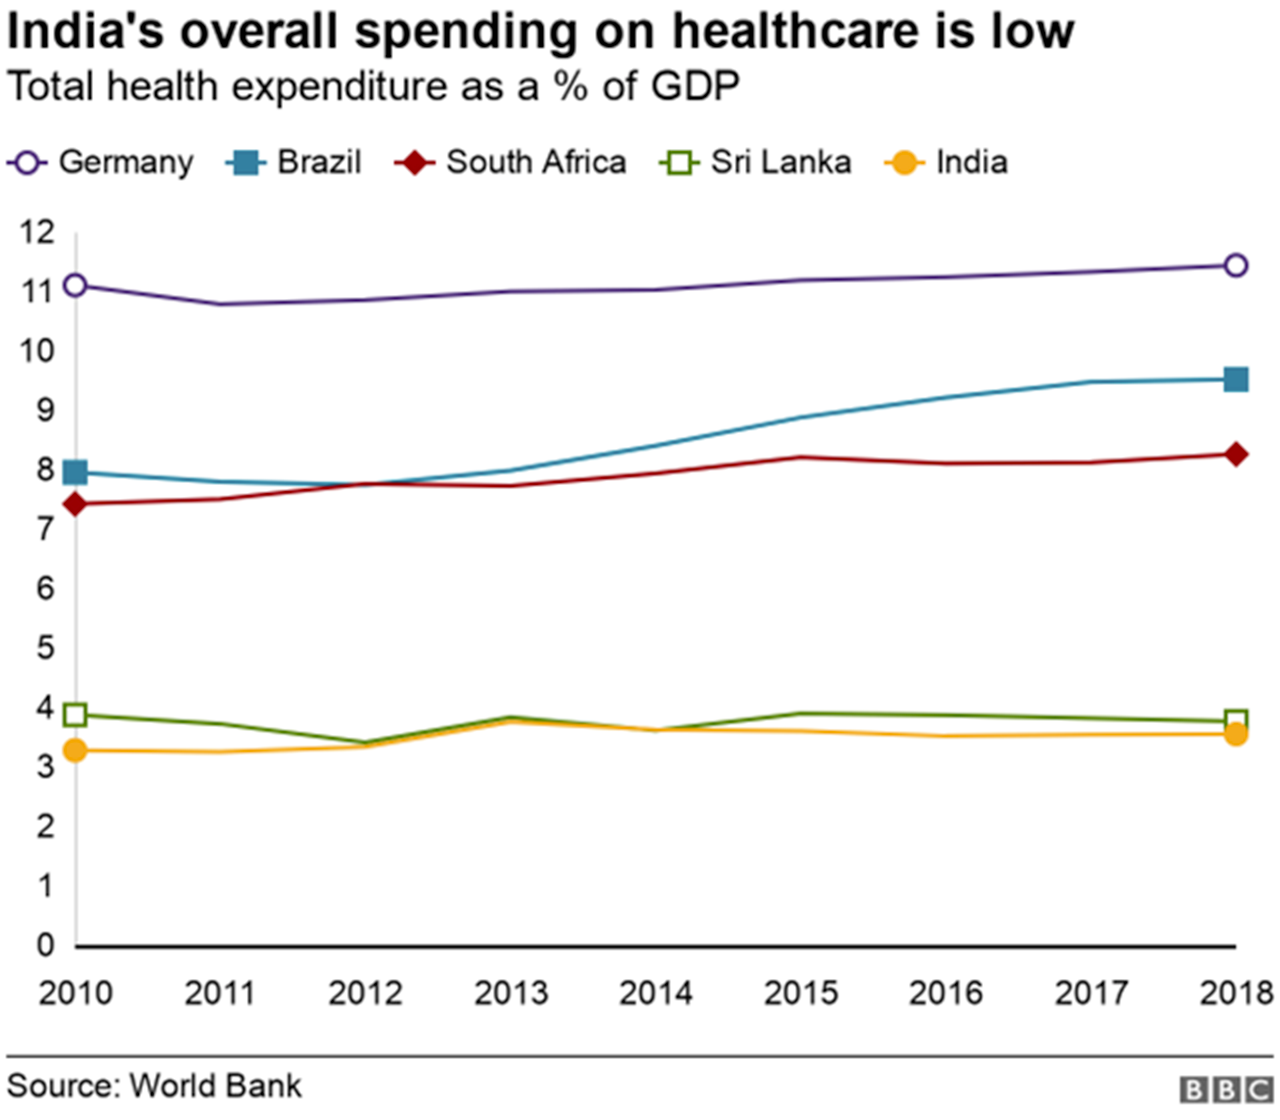 A graph comparing countries healthcare spending